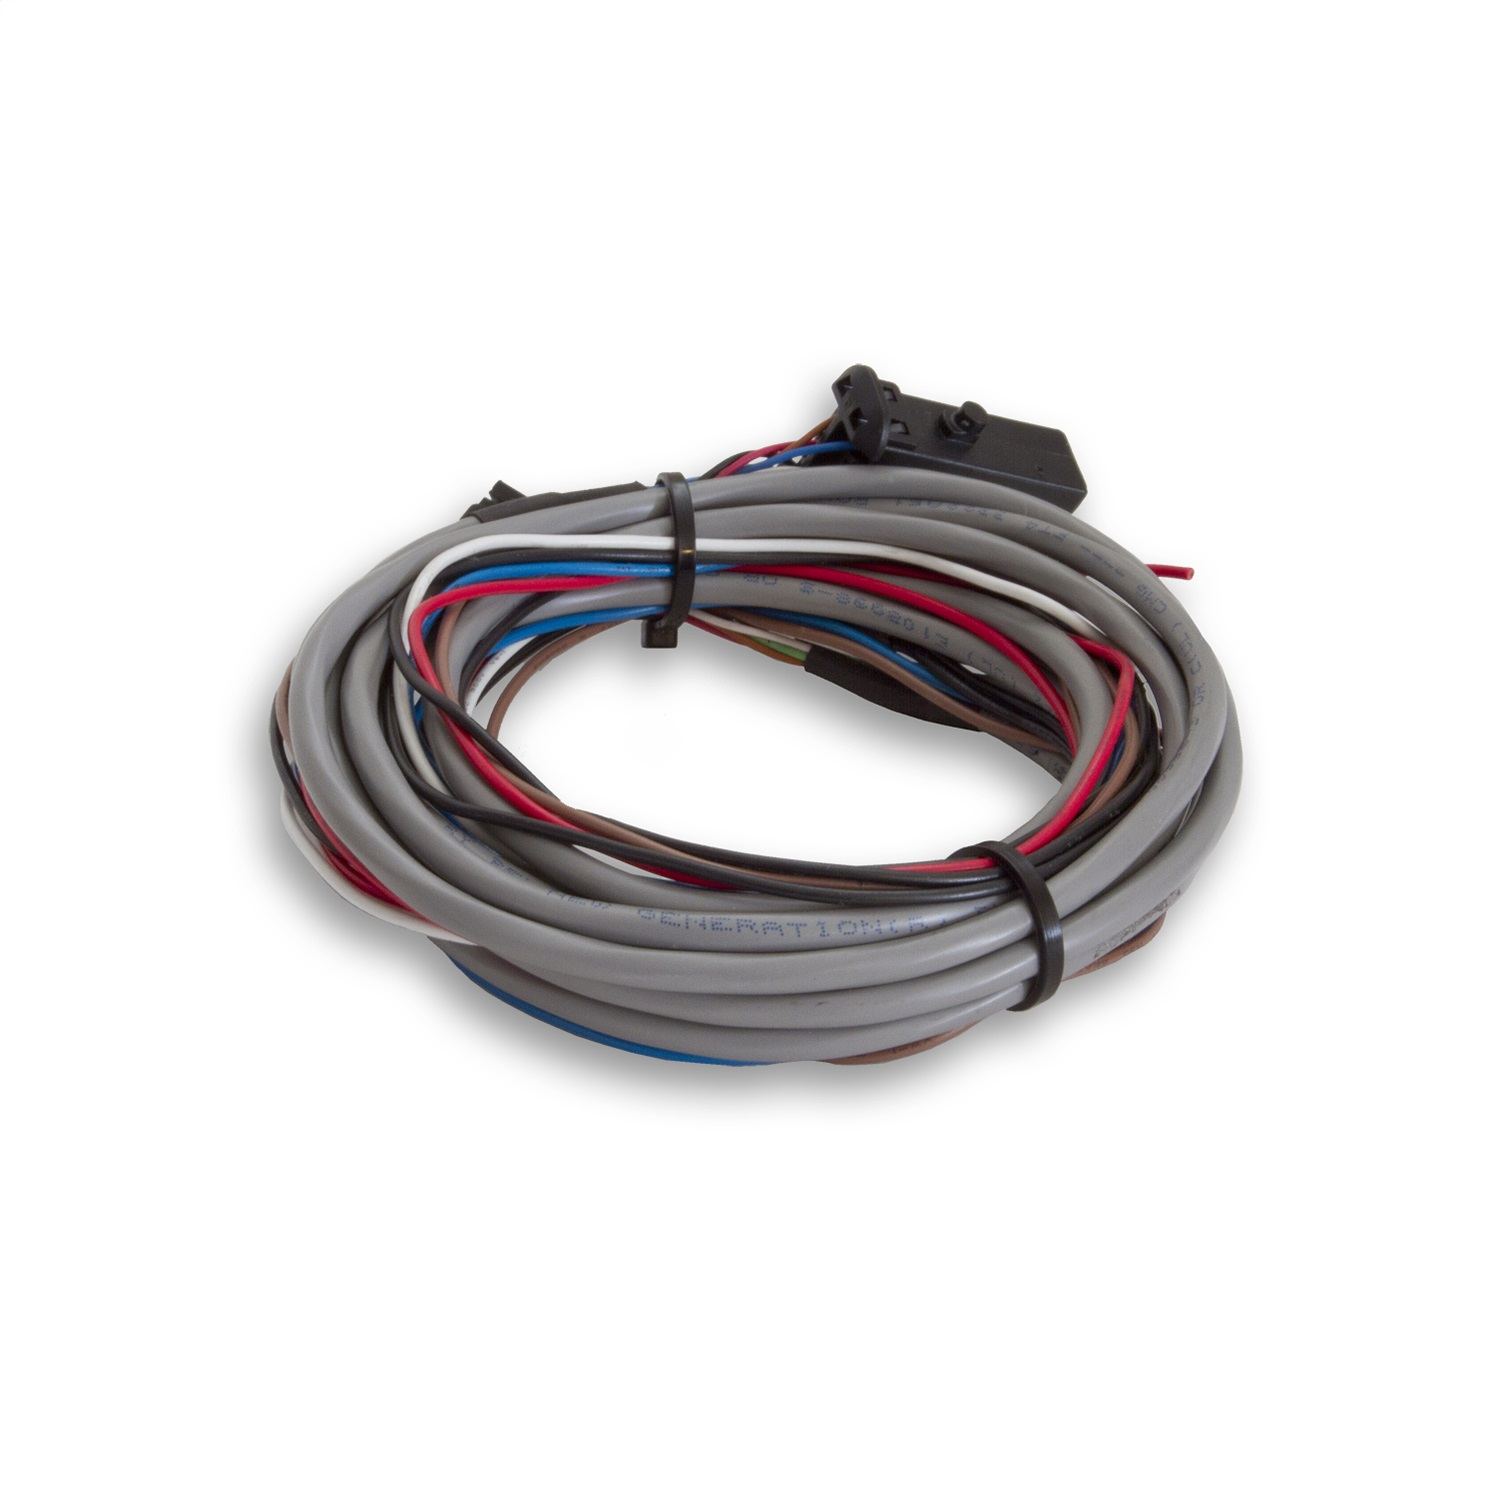 Autometer 5232 Wide Band Wire Harness Replacement Part